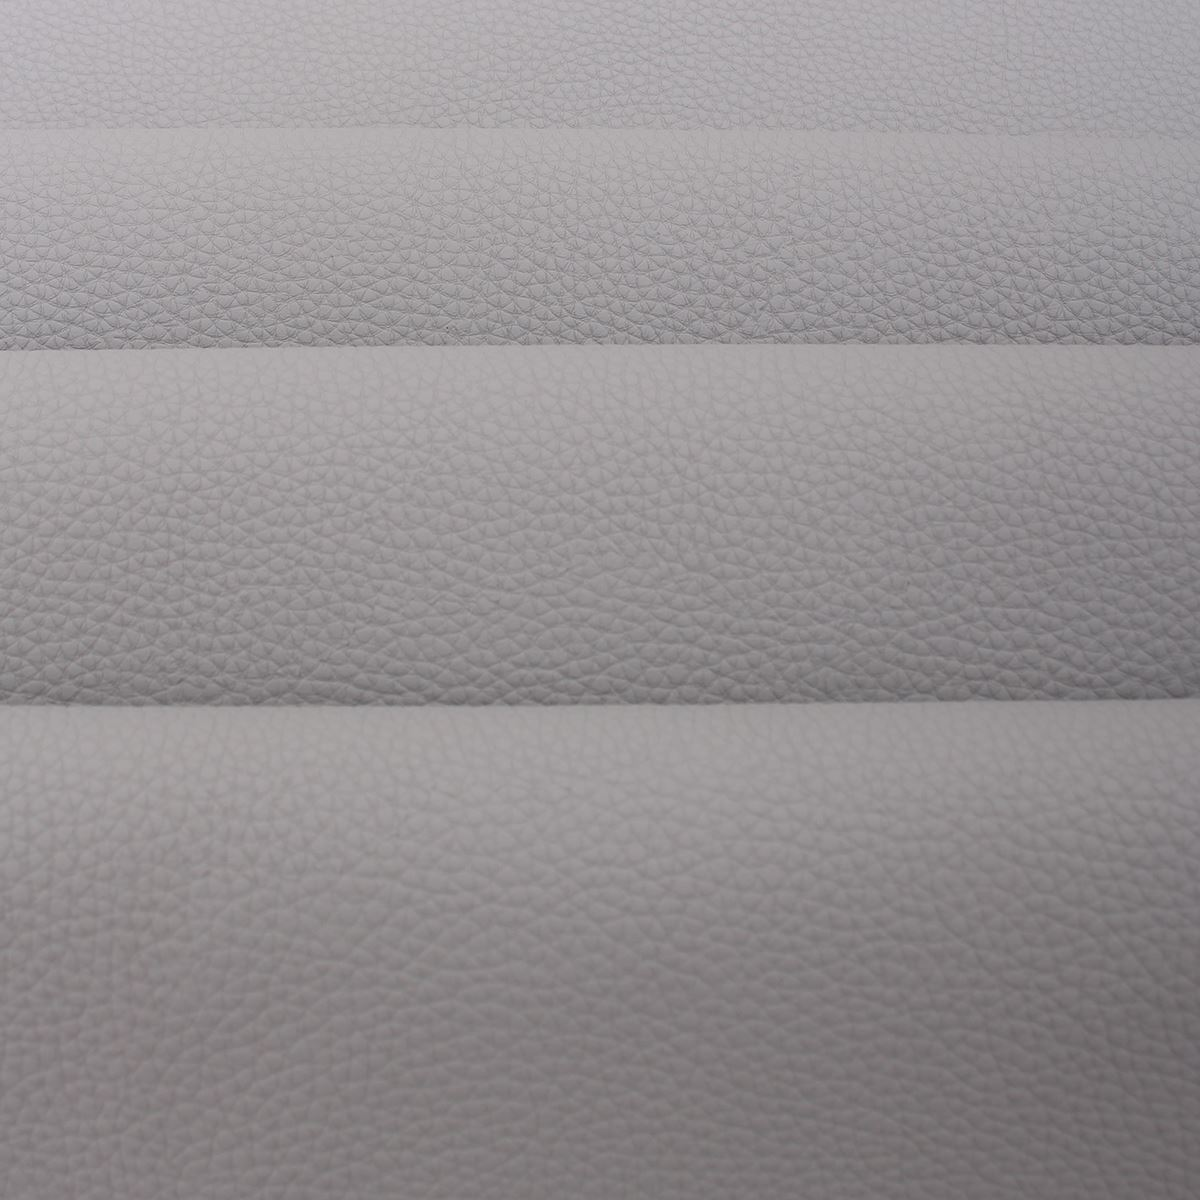 Nova-Faux-Leatherette-Artificial-Leather-Heavy-Grain-Upholstery-Vehicle-Fabric thumbnail 54